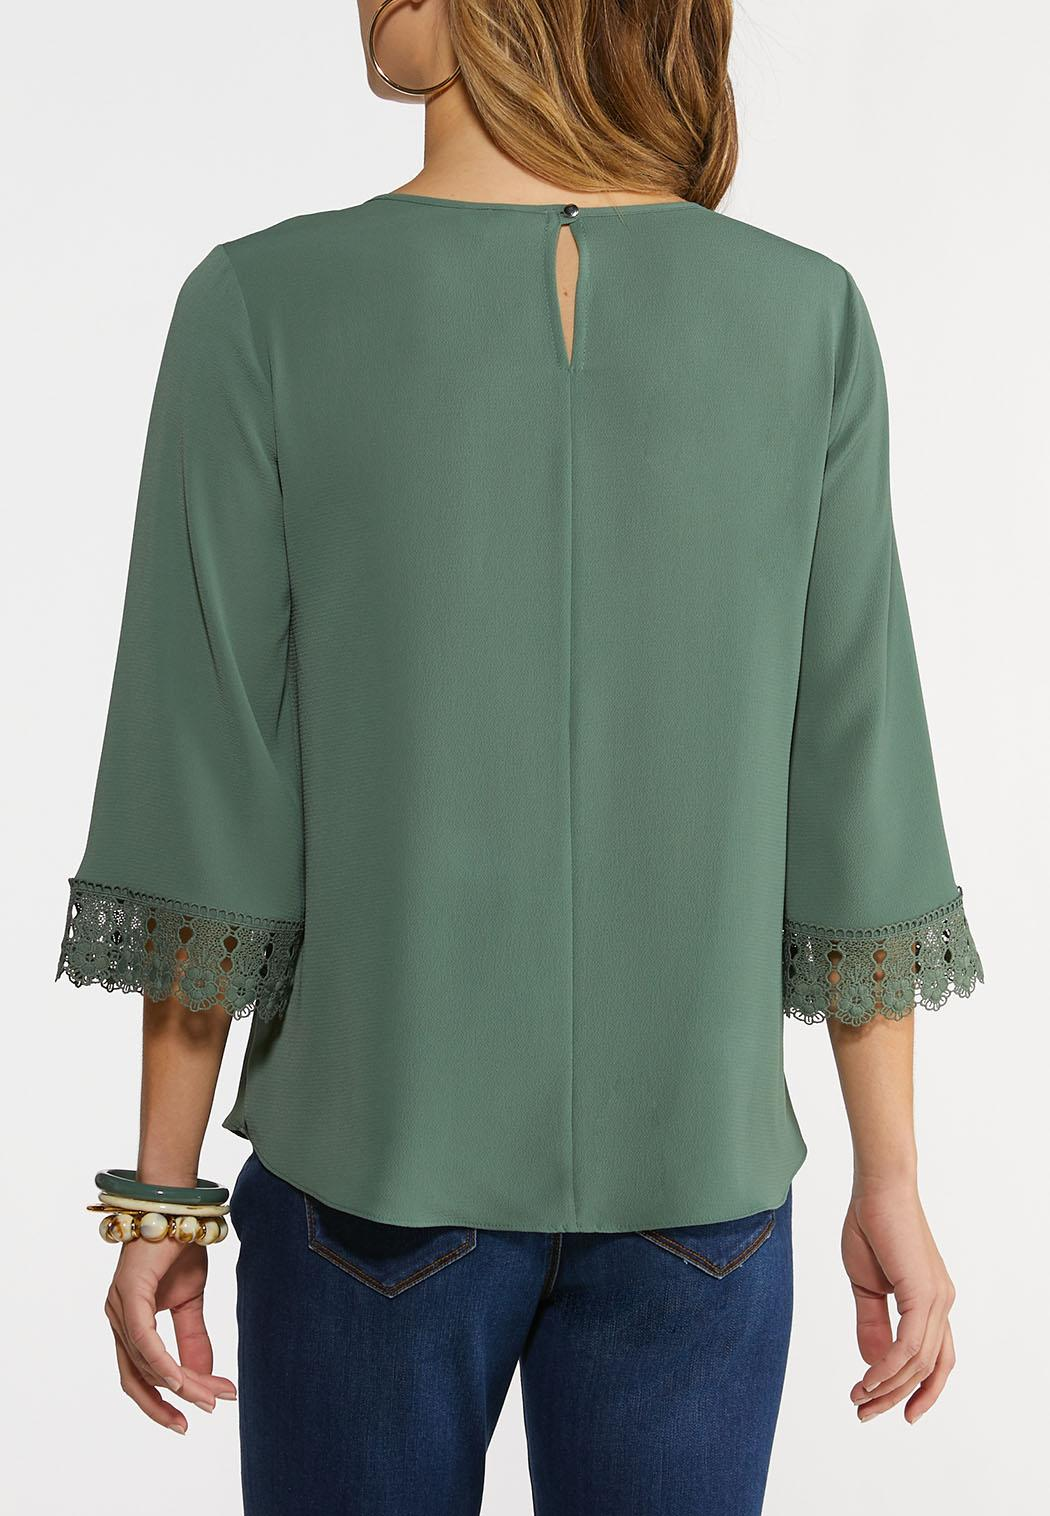 Criss Cross Lace Sleeve Top (Item #44201044)